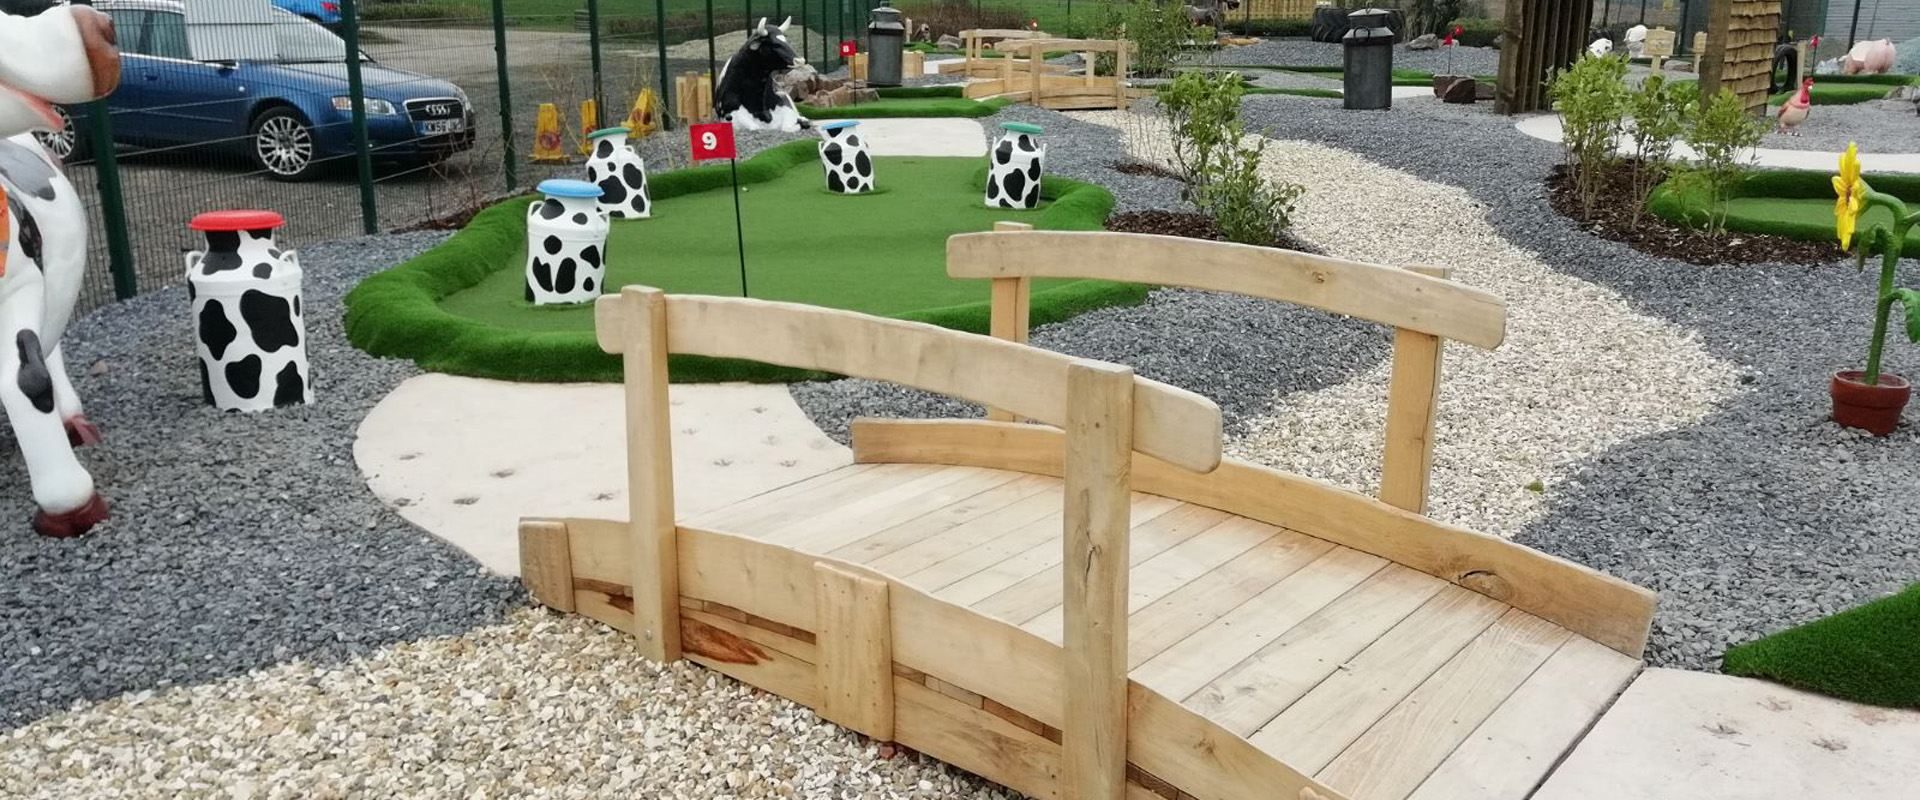 PPG - Bespoke Adventure Golf Courses